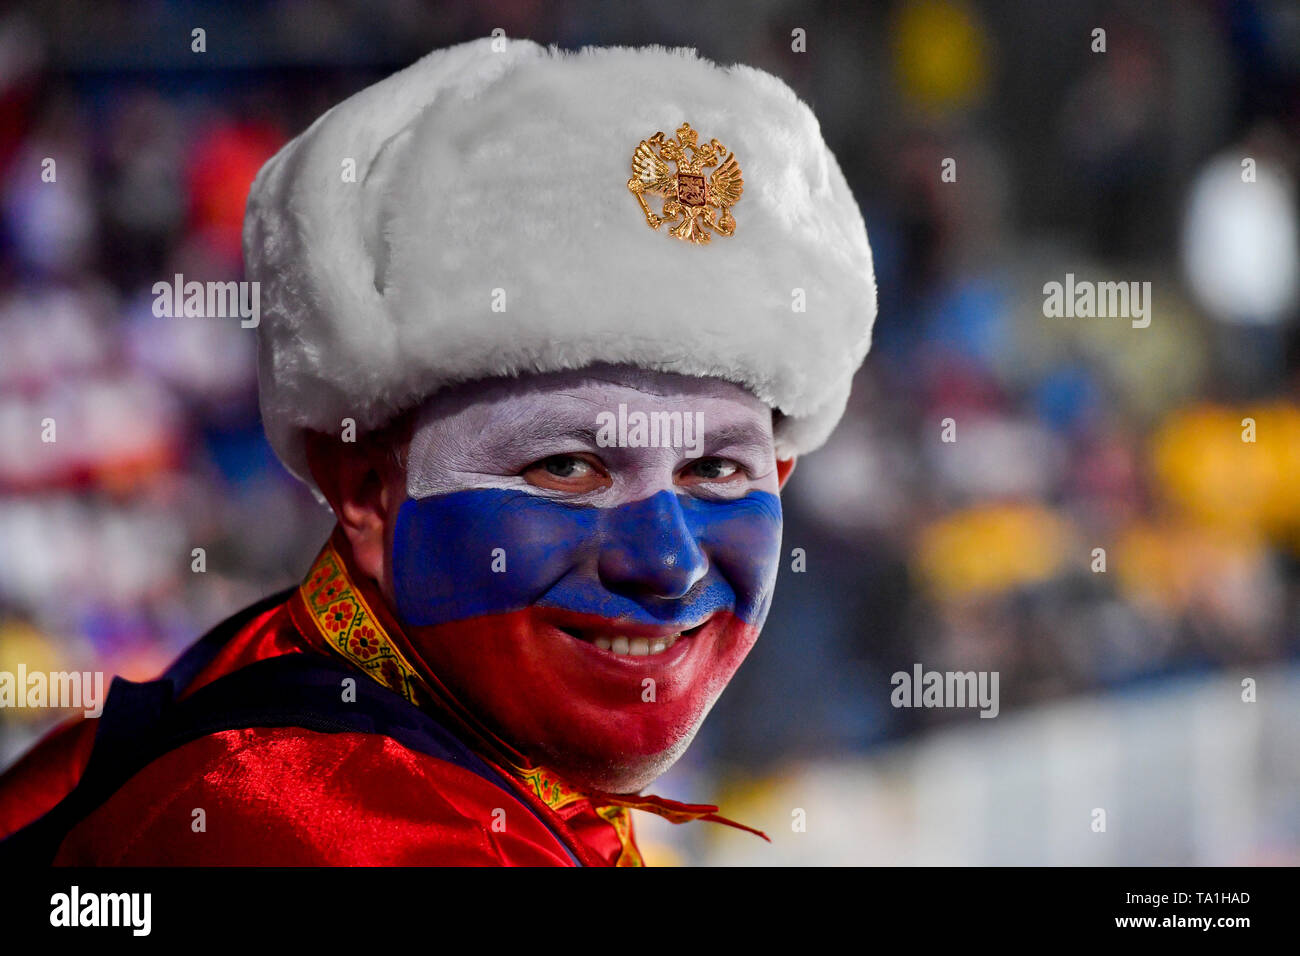 Bratislava, Slovakia. 21st May, 2019. Fans of Russia in action during the match between Sweden and Russia within the 2019 IIHF World Championship in Bratislava, Slovakia, on May 21, 2019. Credit: Vit Simanek/CTK Photo/Alamy Live News Stock Photo